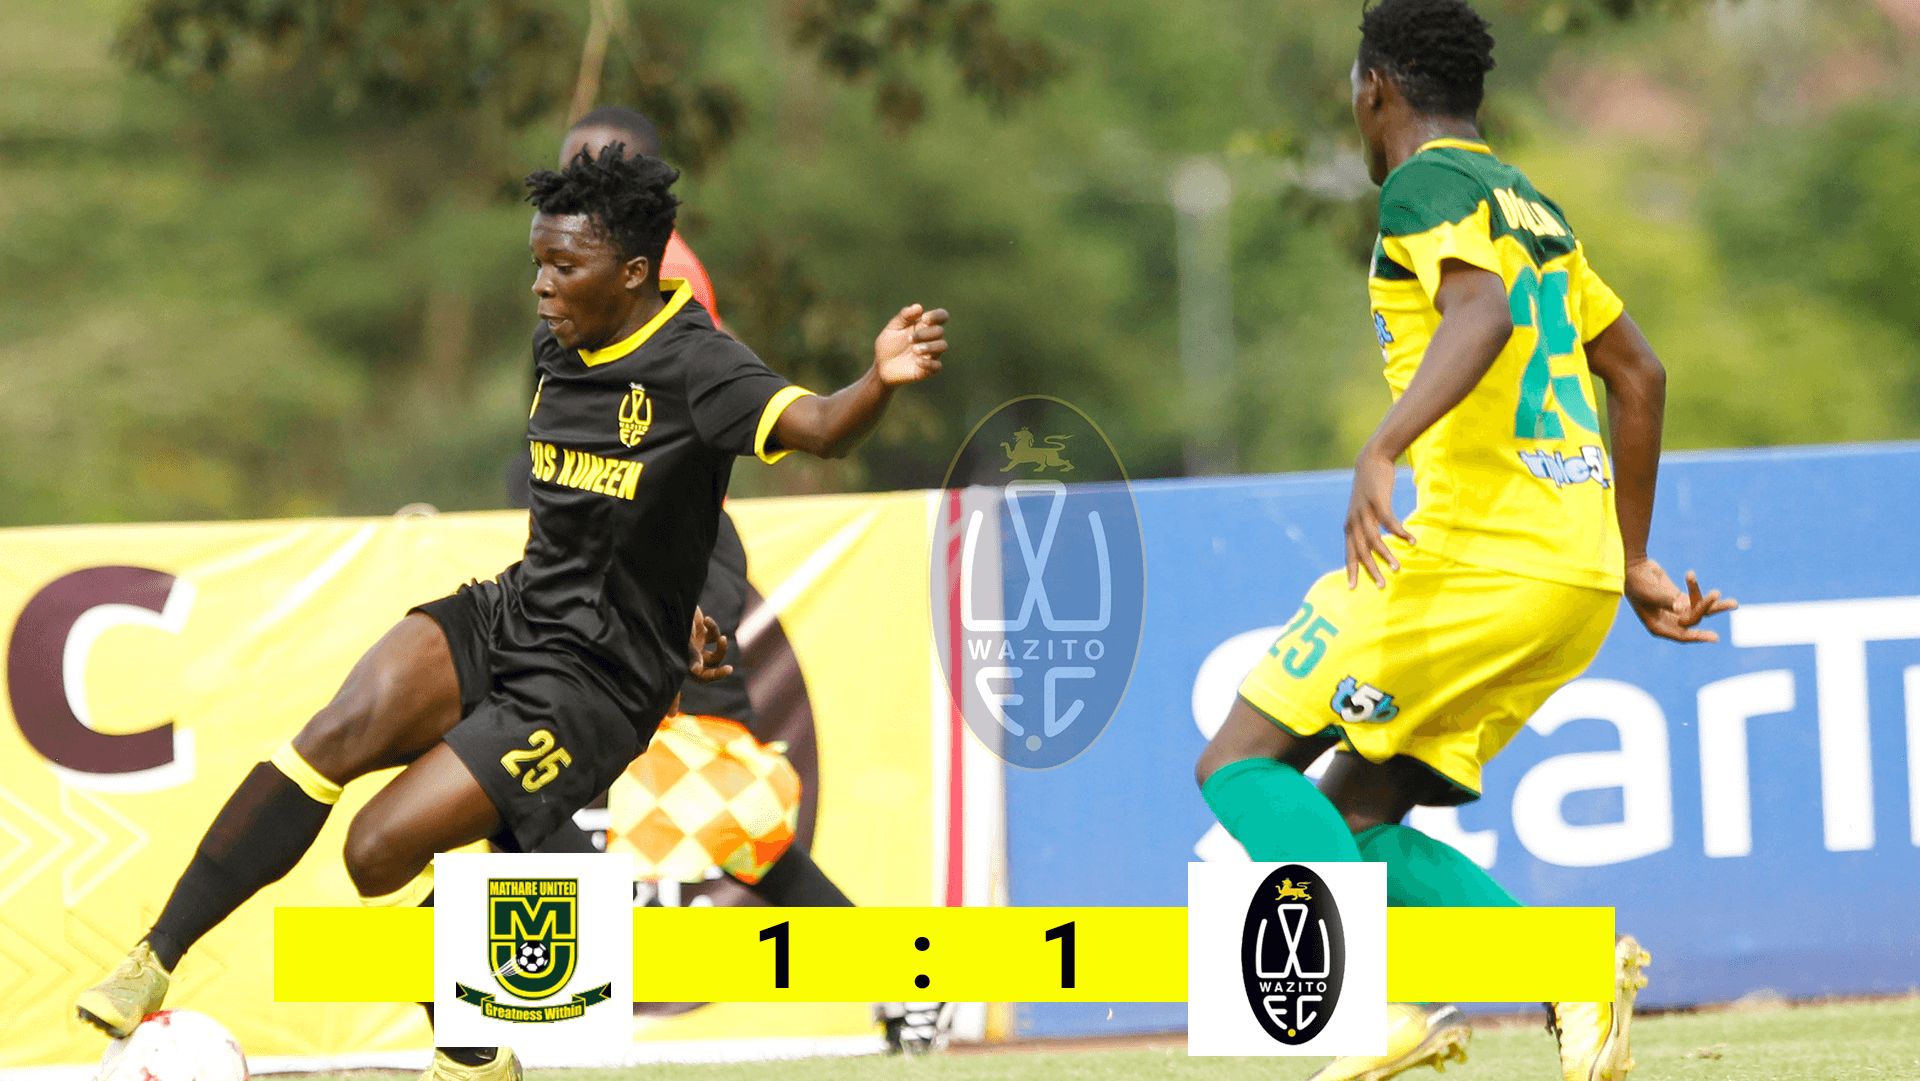 MATHARE vs WAZITO